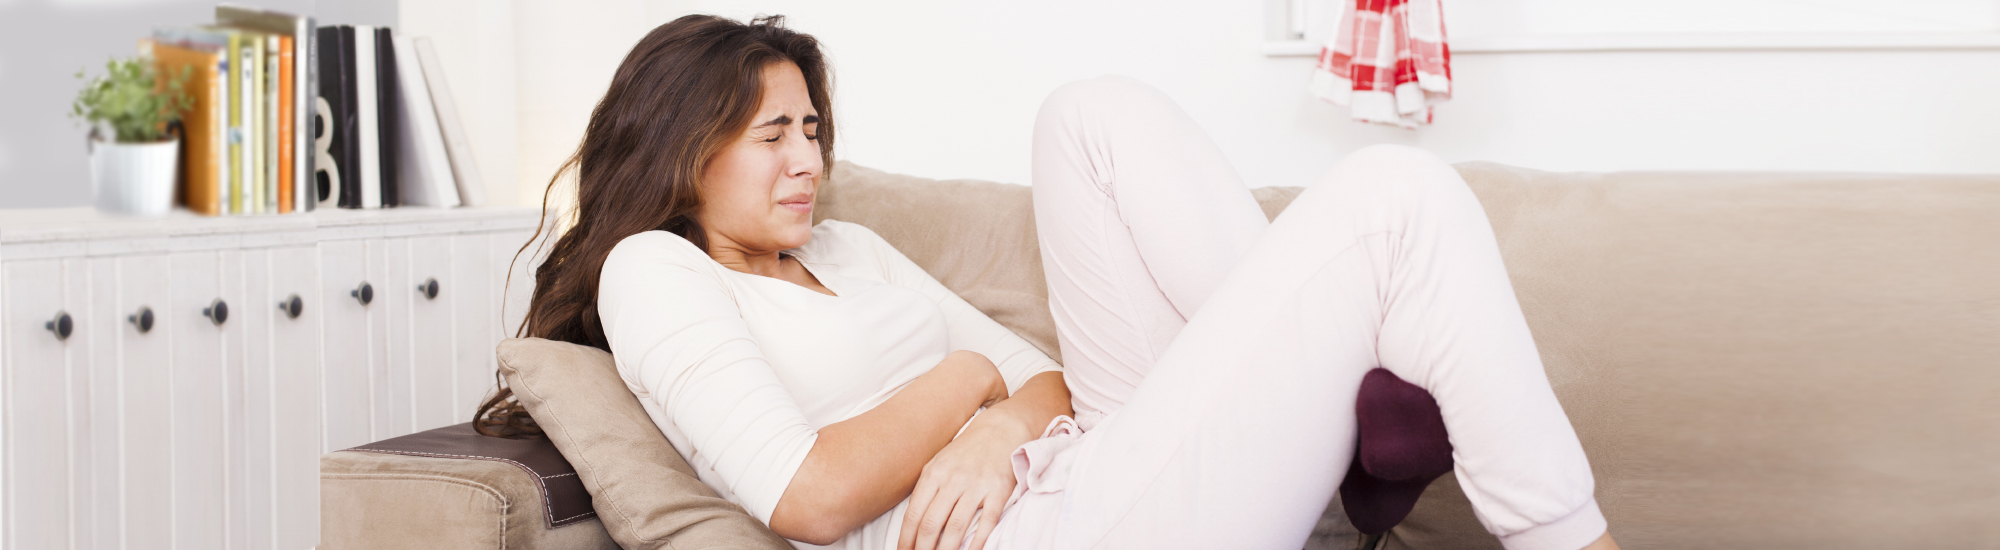 Ayurvedic treatment for Period Pain References